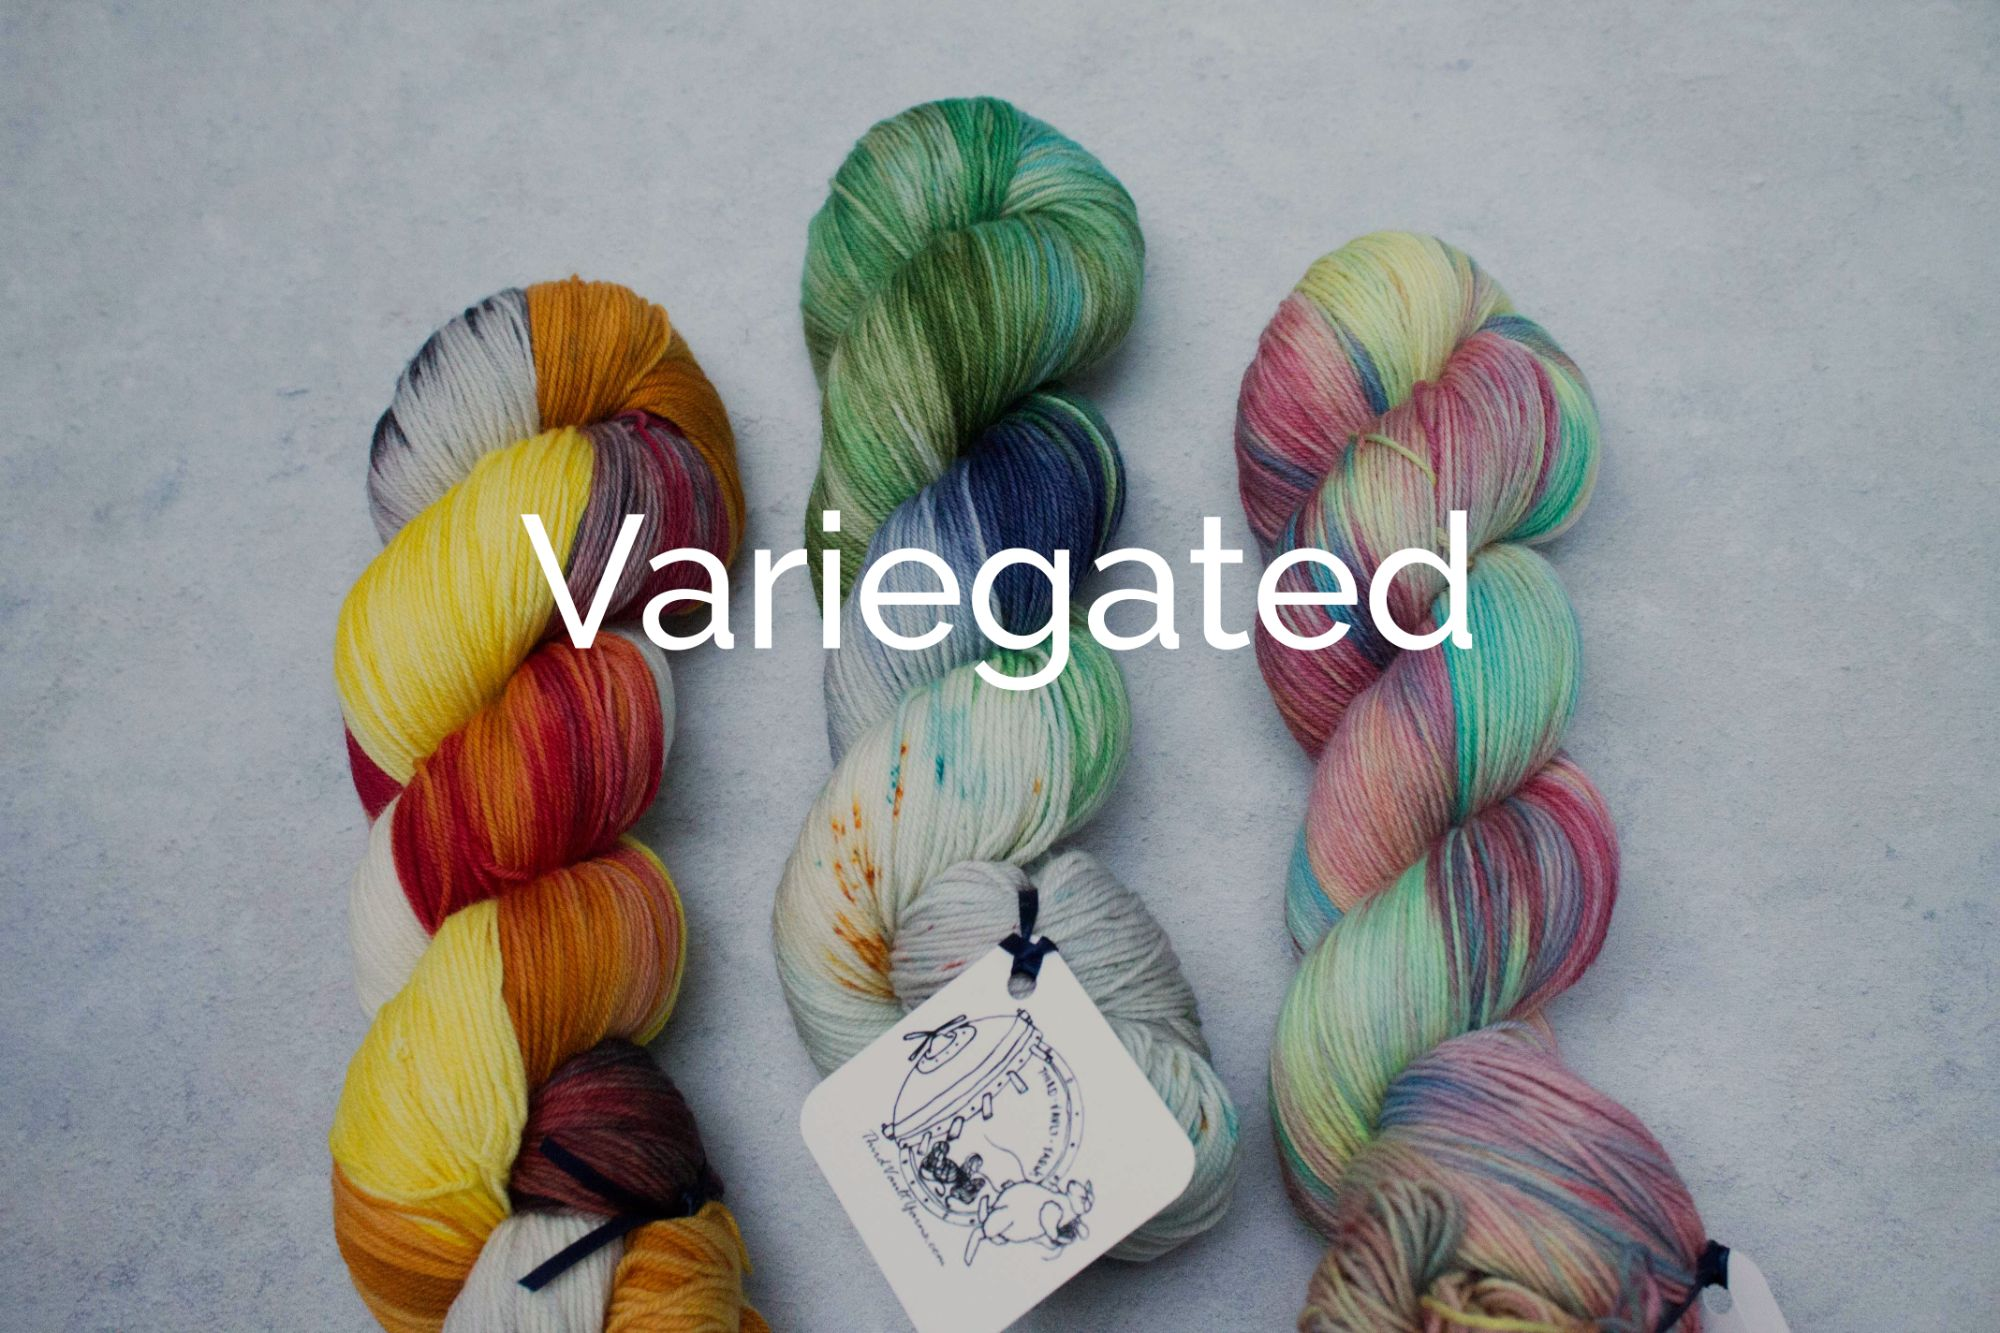 Check out the Variegated yarns section of the shop